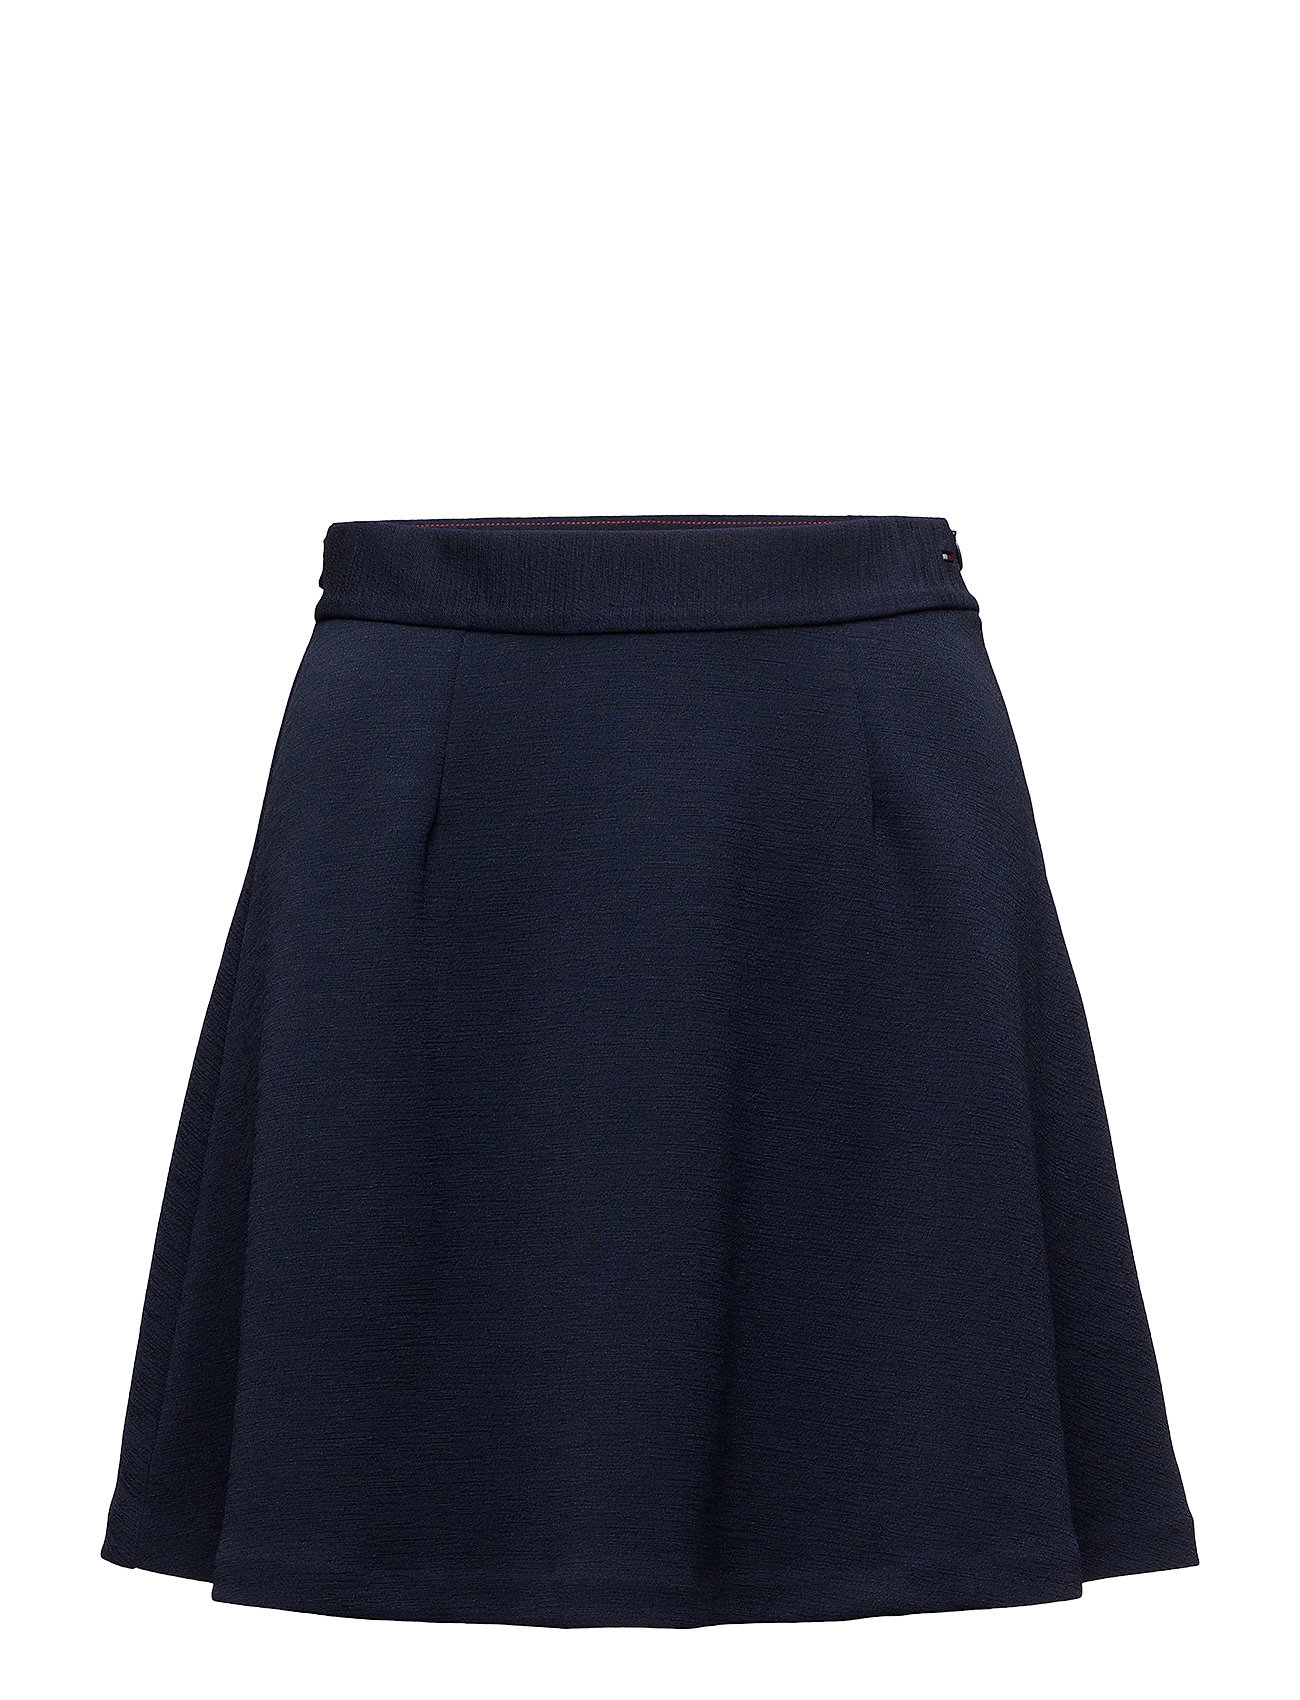 Image of Tjw Easy Skater Skirt (3026627371)